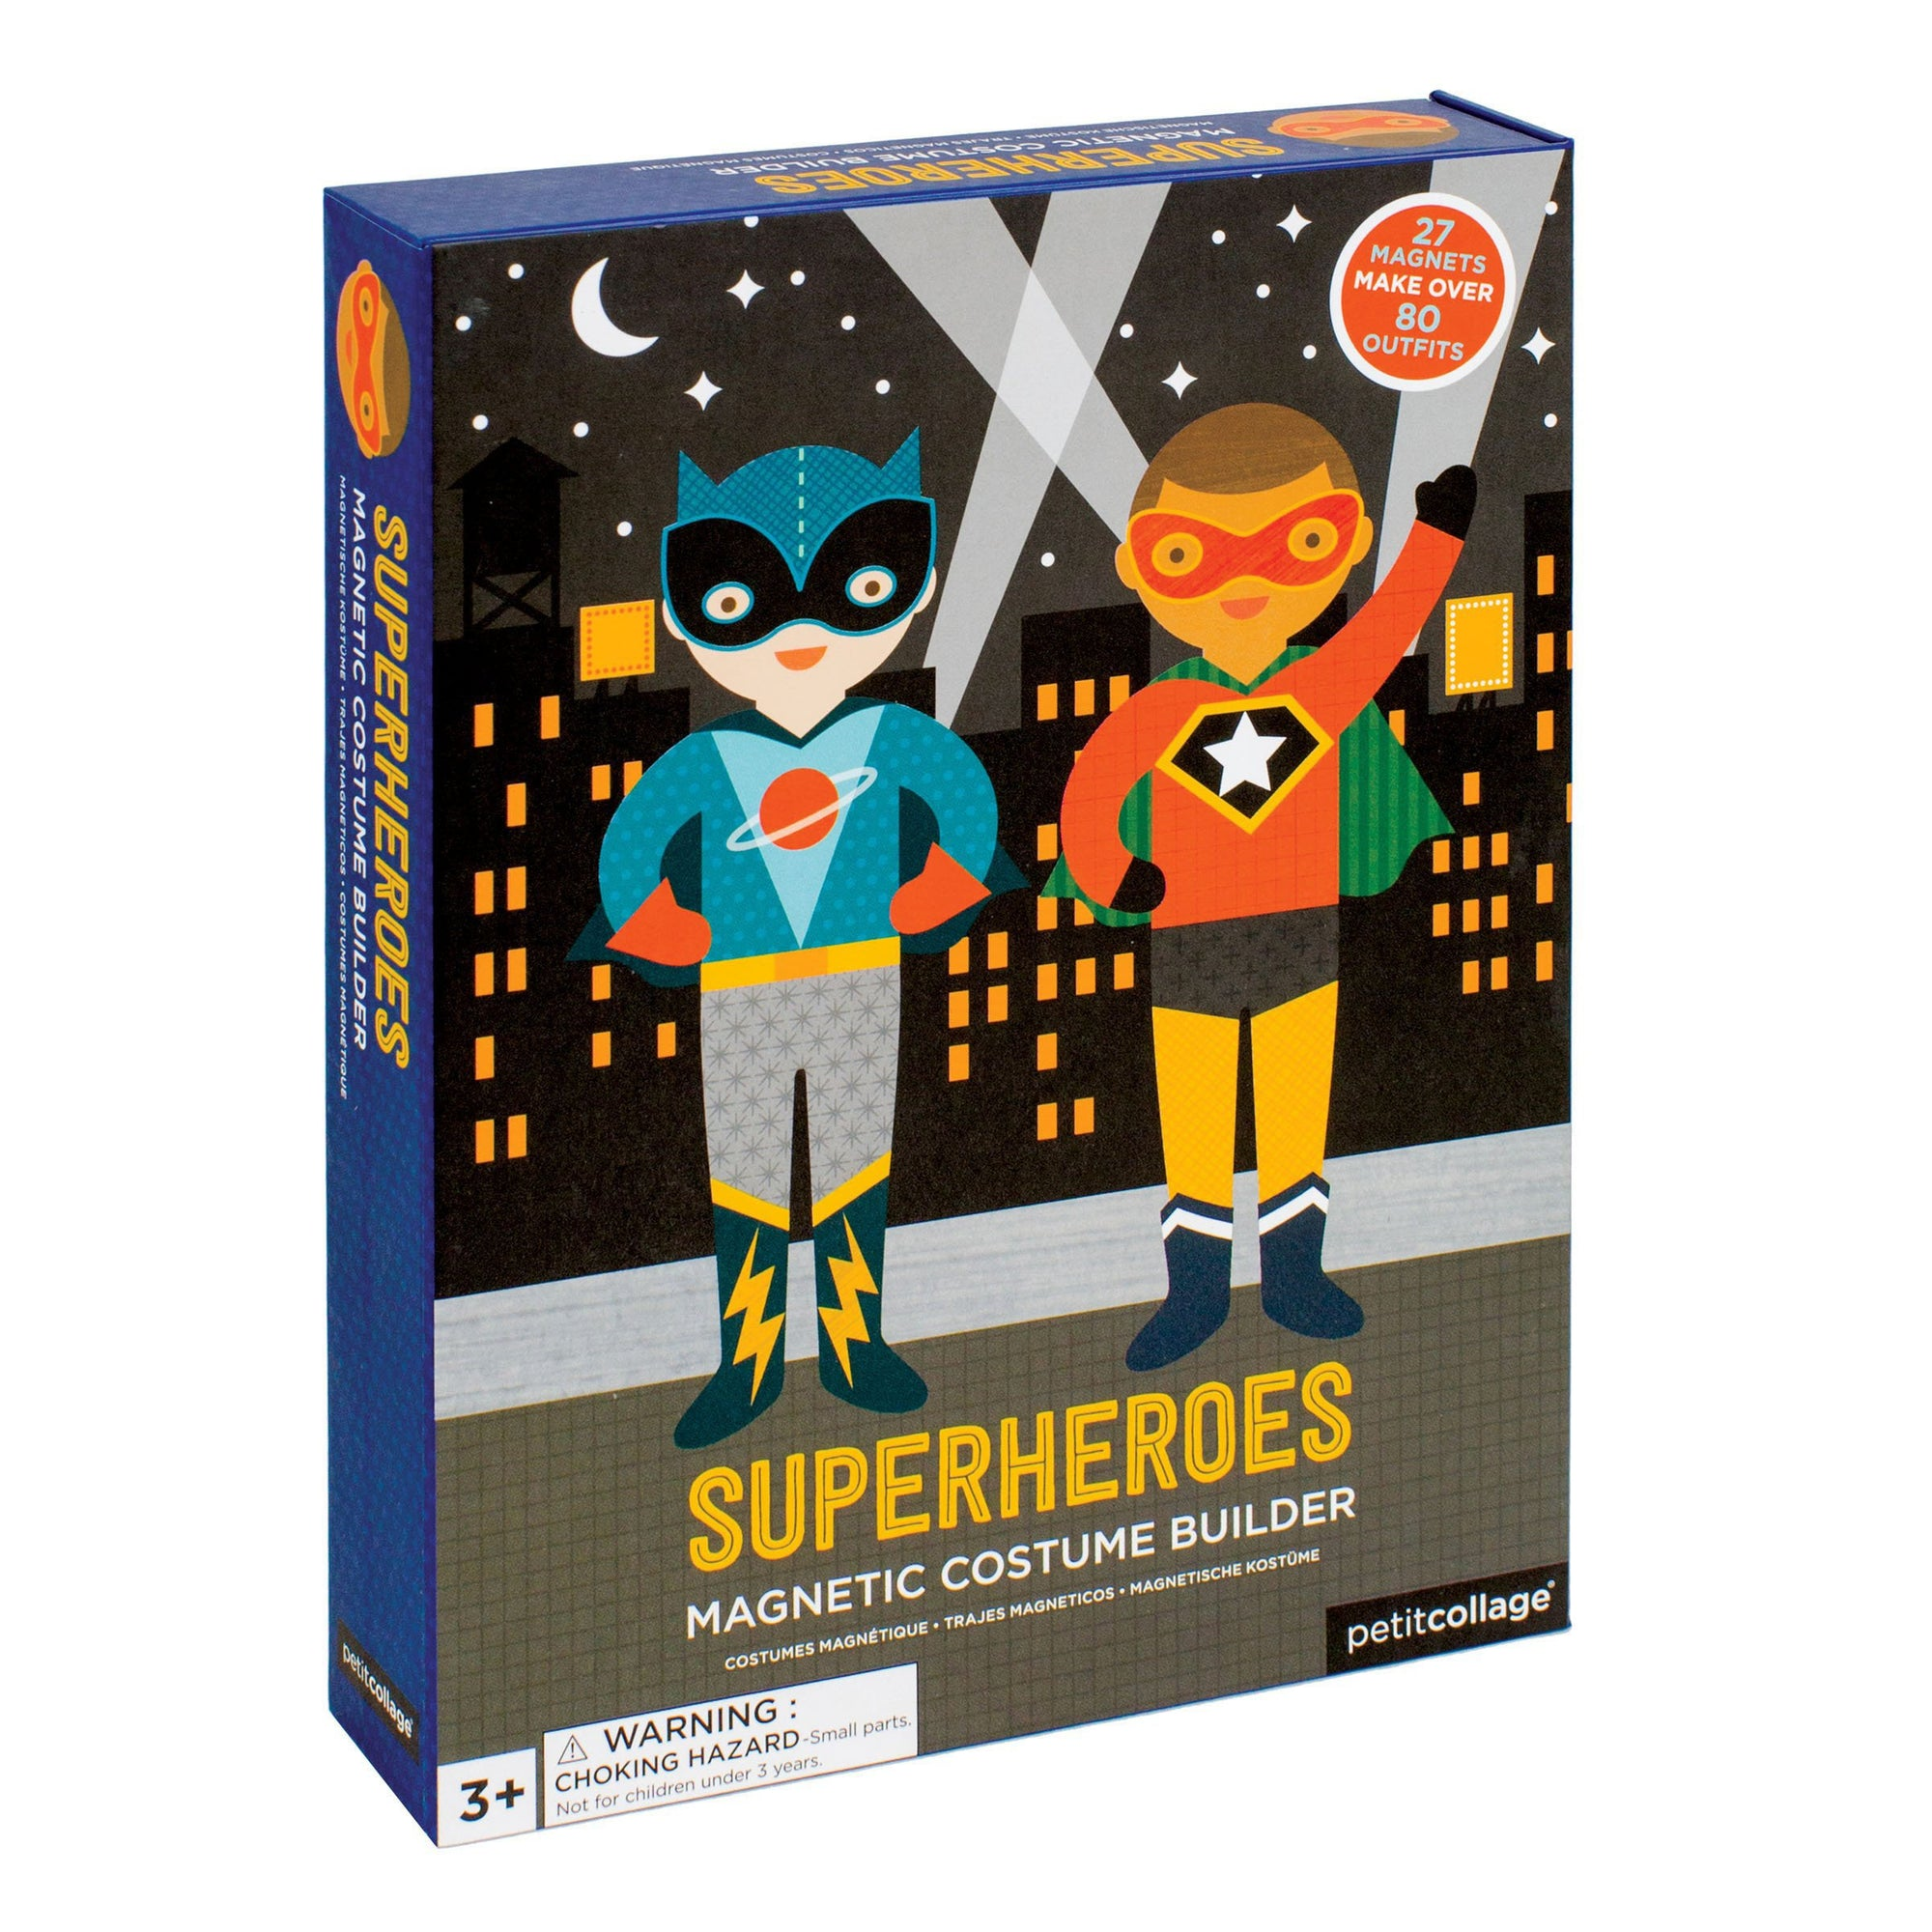 Superheroes Magnetic Dress-Ups